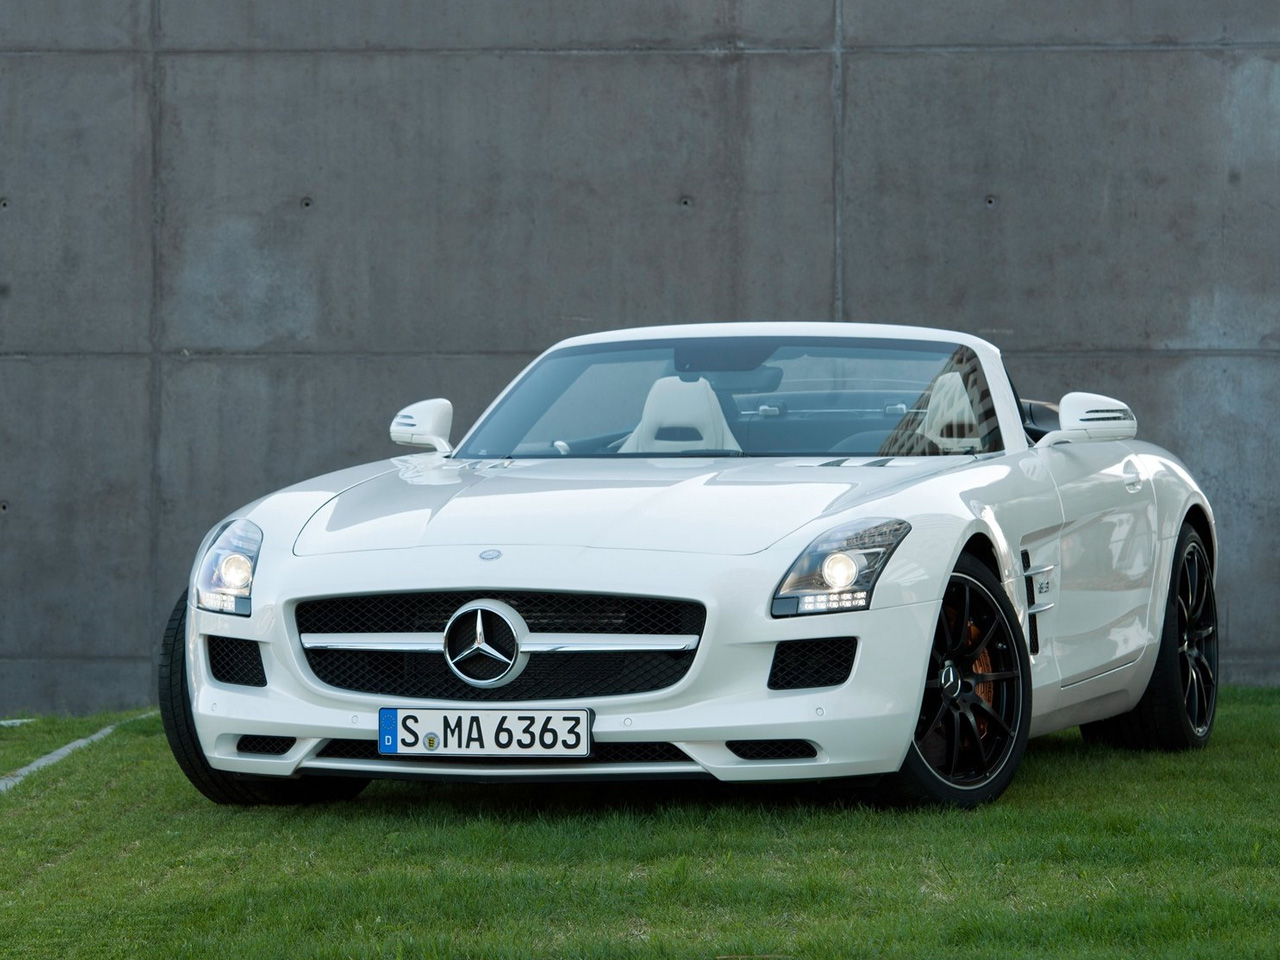 mercedes benz sls 6 3 amg 2012 car information news. Black Bedroom Furniture Sets. Home Design Ideas